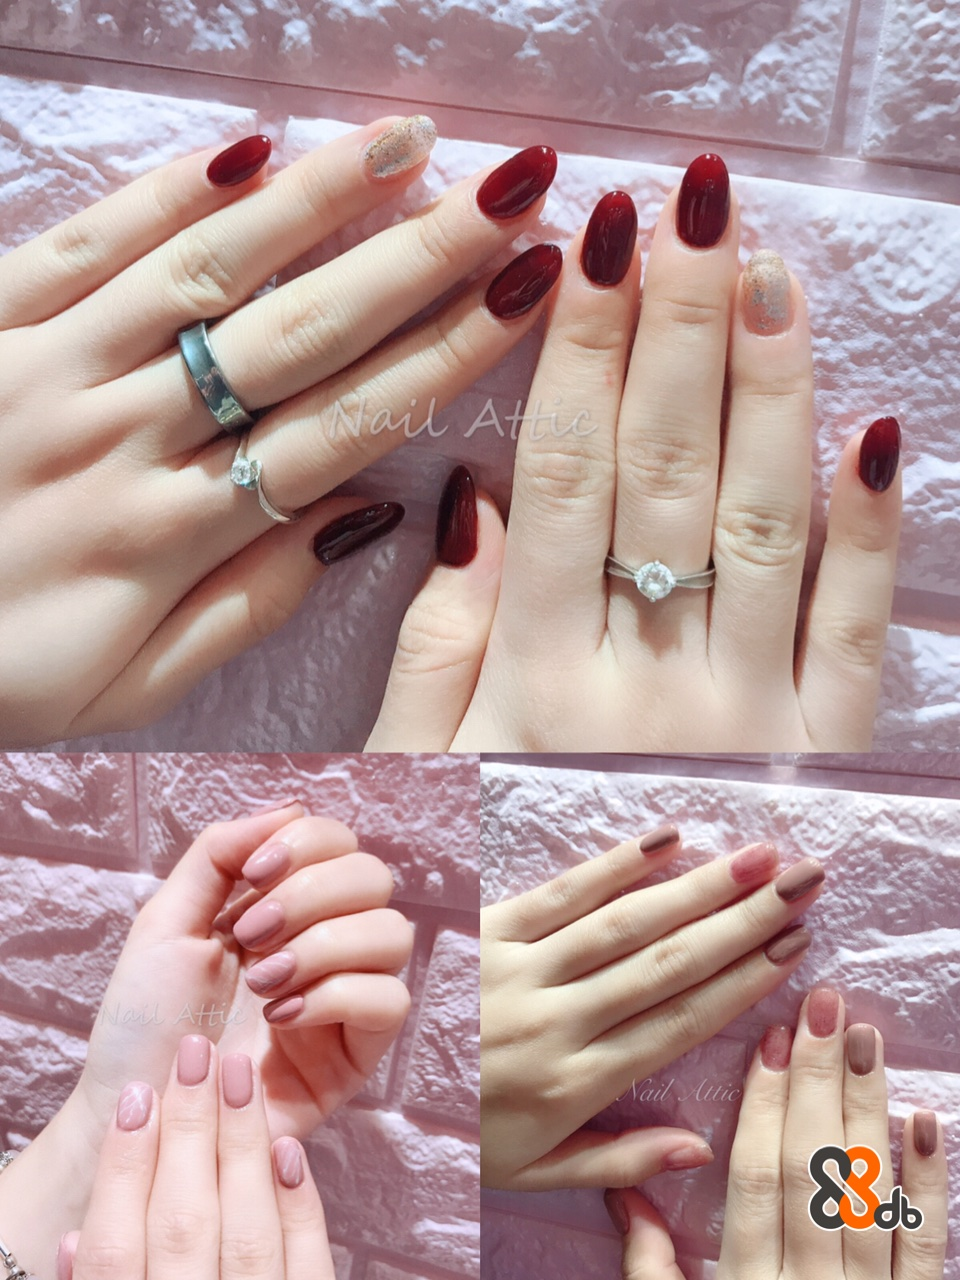 Nail,Manicure,Finger,Nail care,Hand